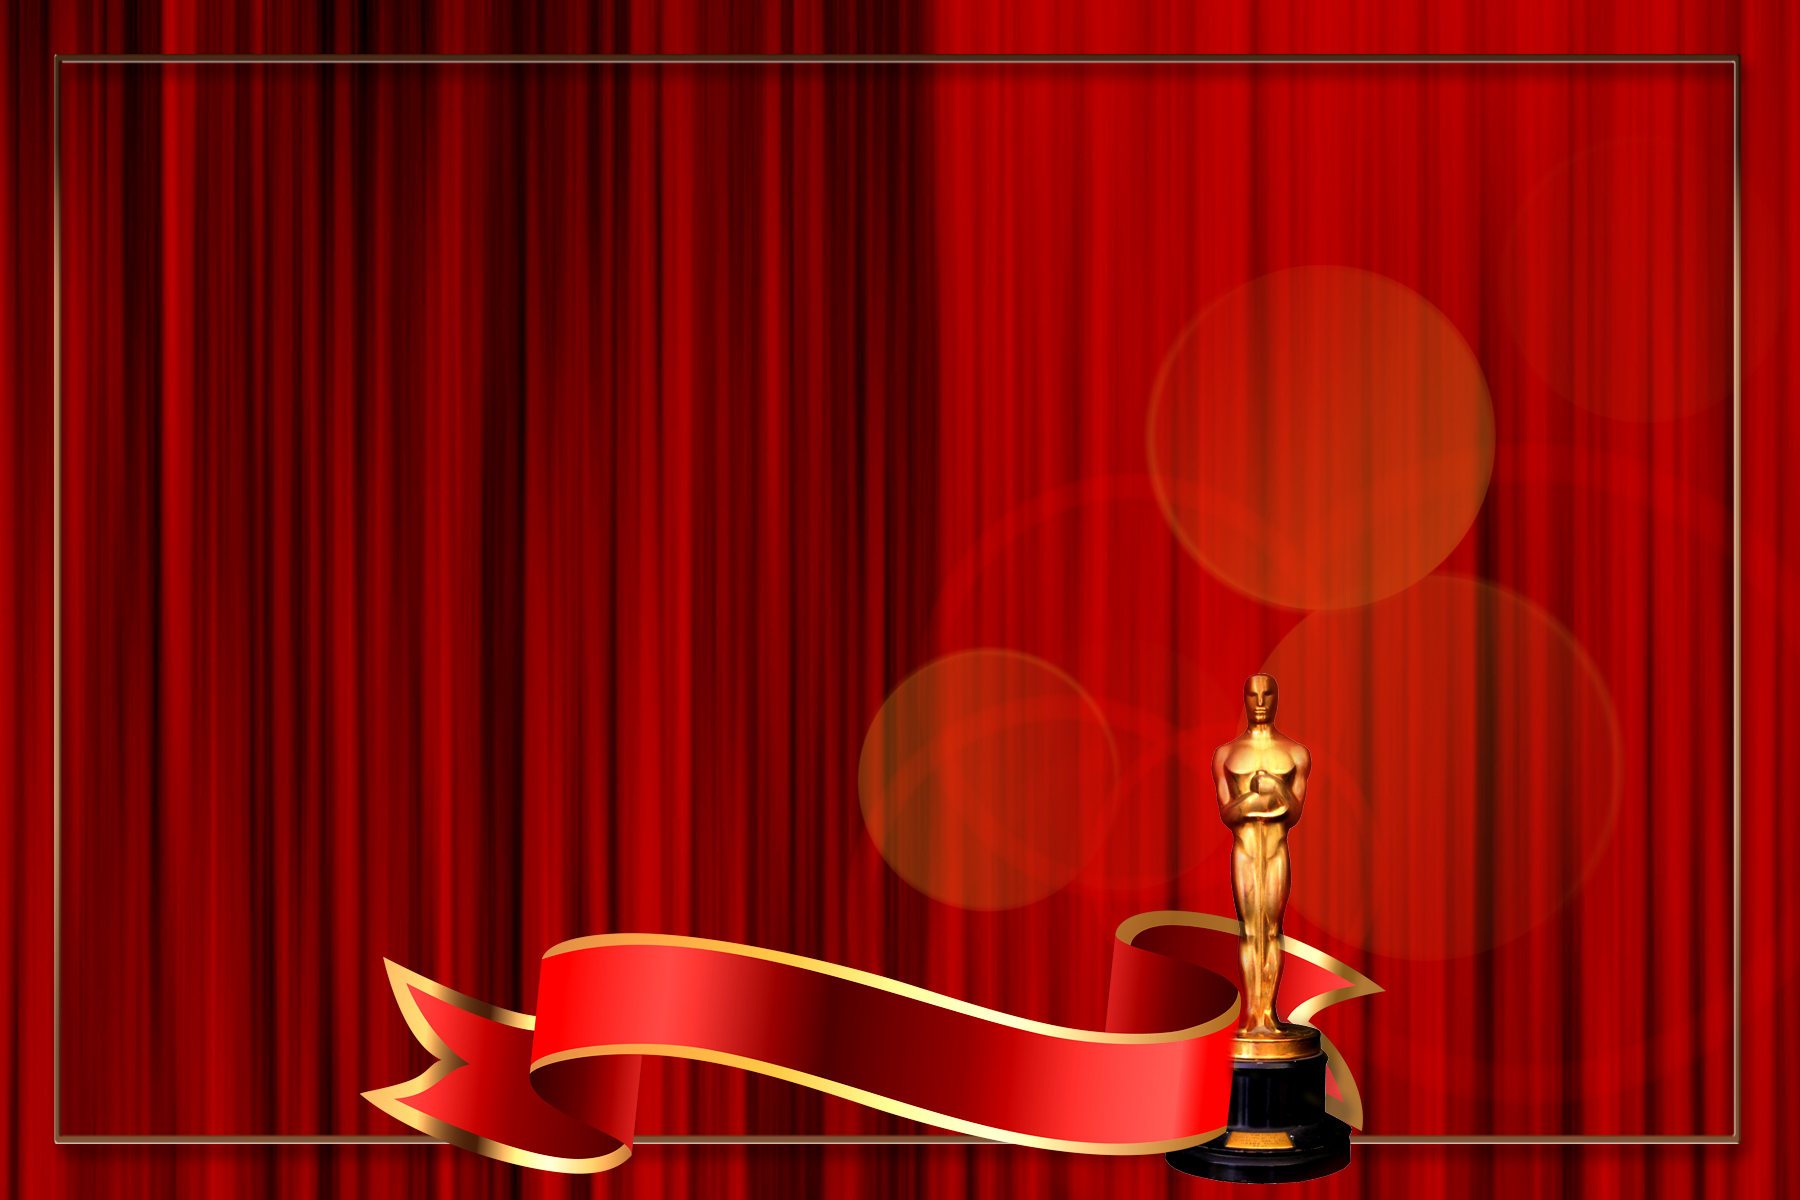 RED_CURTAIN_WITH_black_border_2